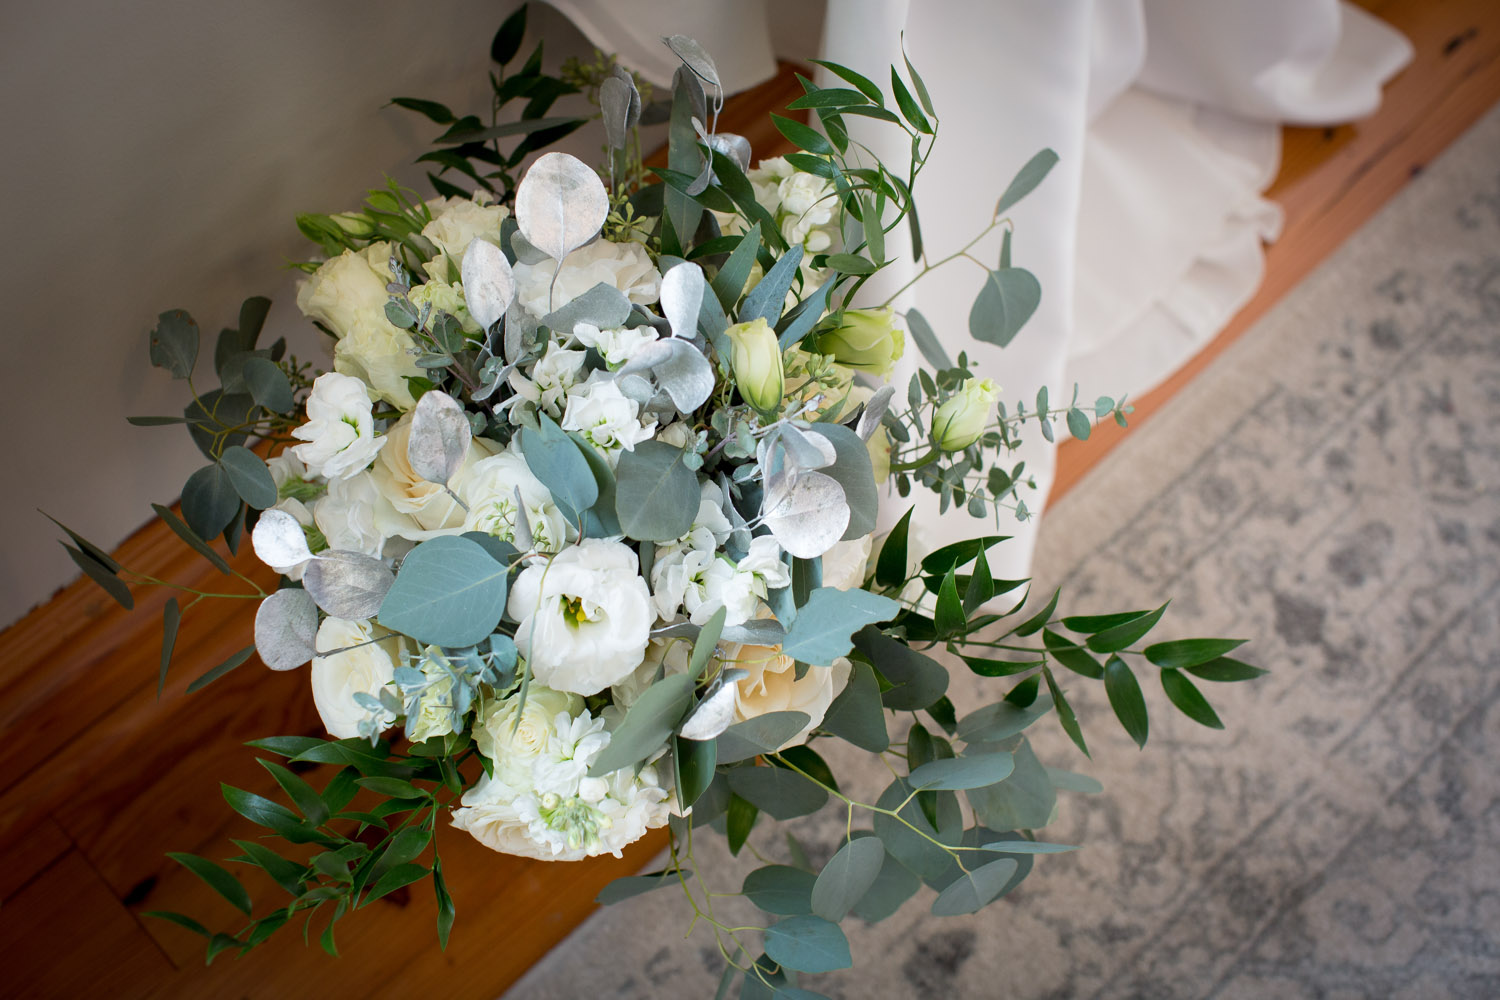 02-winter-brunch-morning-weddings-at-the-broz-new-prage-mn-details-bridal-boquet-white-roses-eucalytus-mahonen-photography.jpg